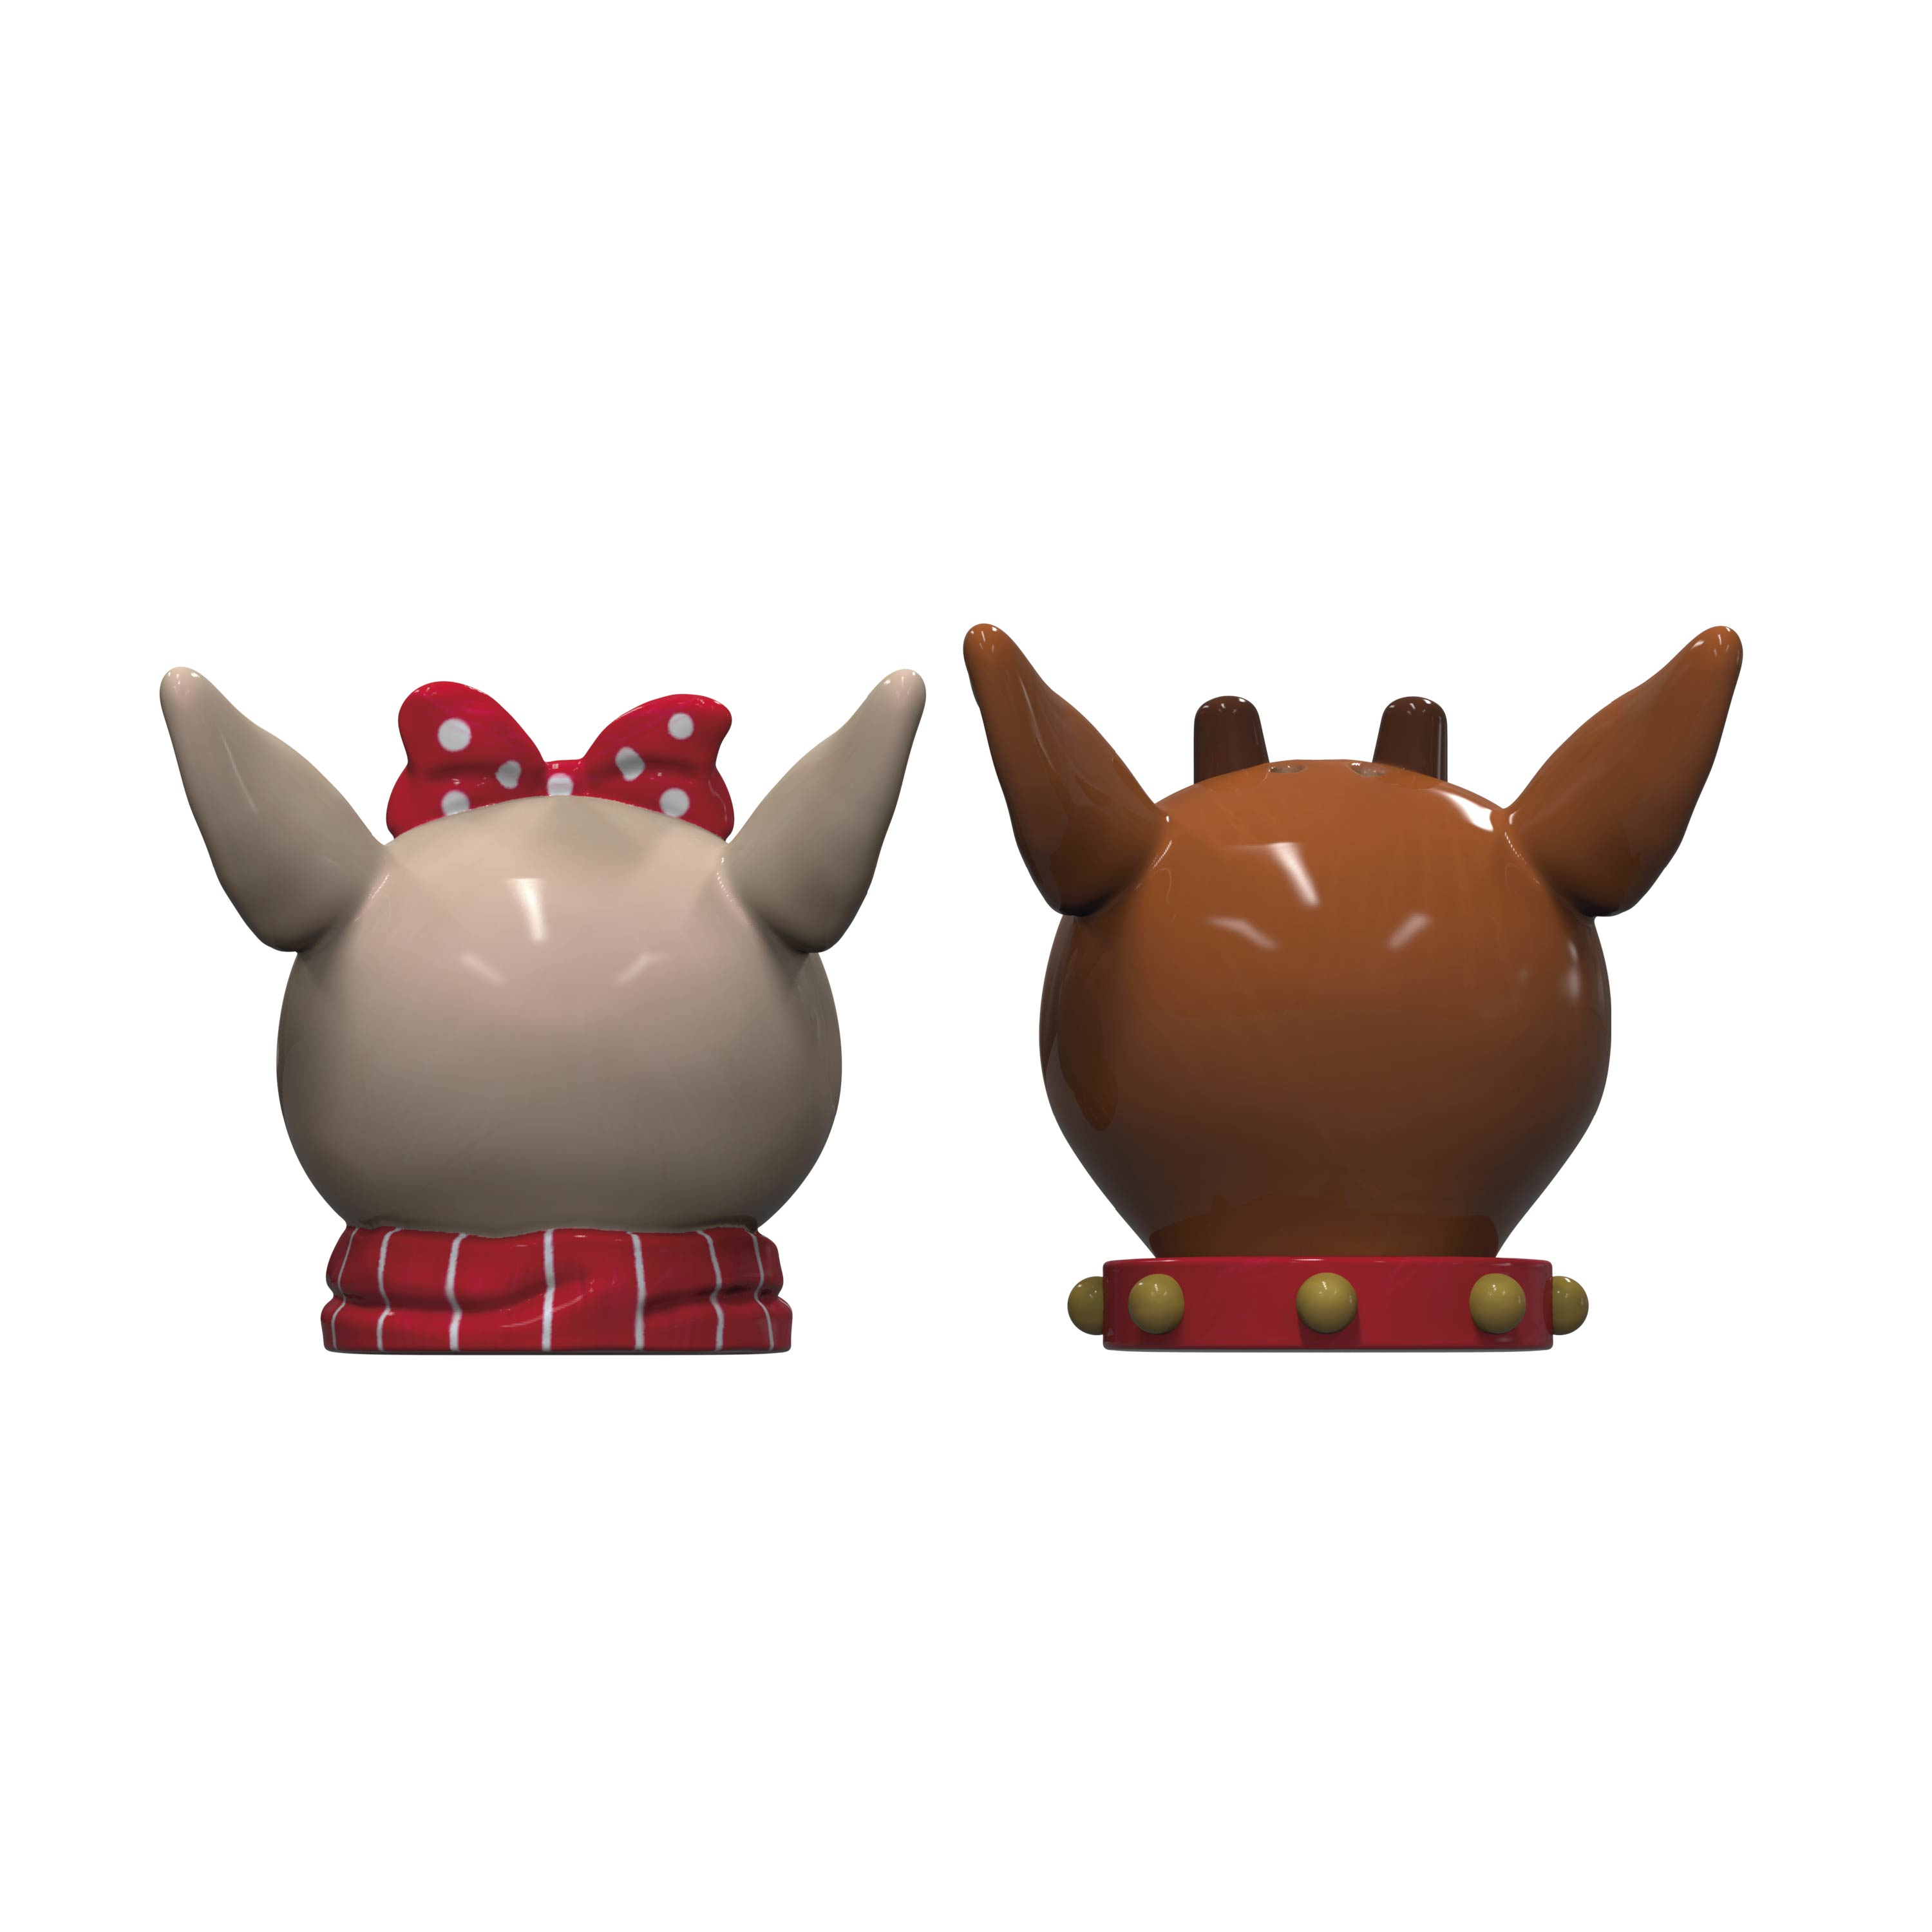 Rudolph the Red-Nosed Reindeer Salt and Pepper Shaker Set, Rudolph & Clarice, 2-piece set slideshow image 5